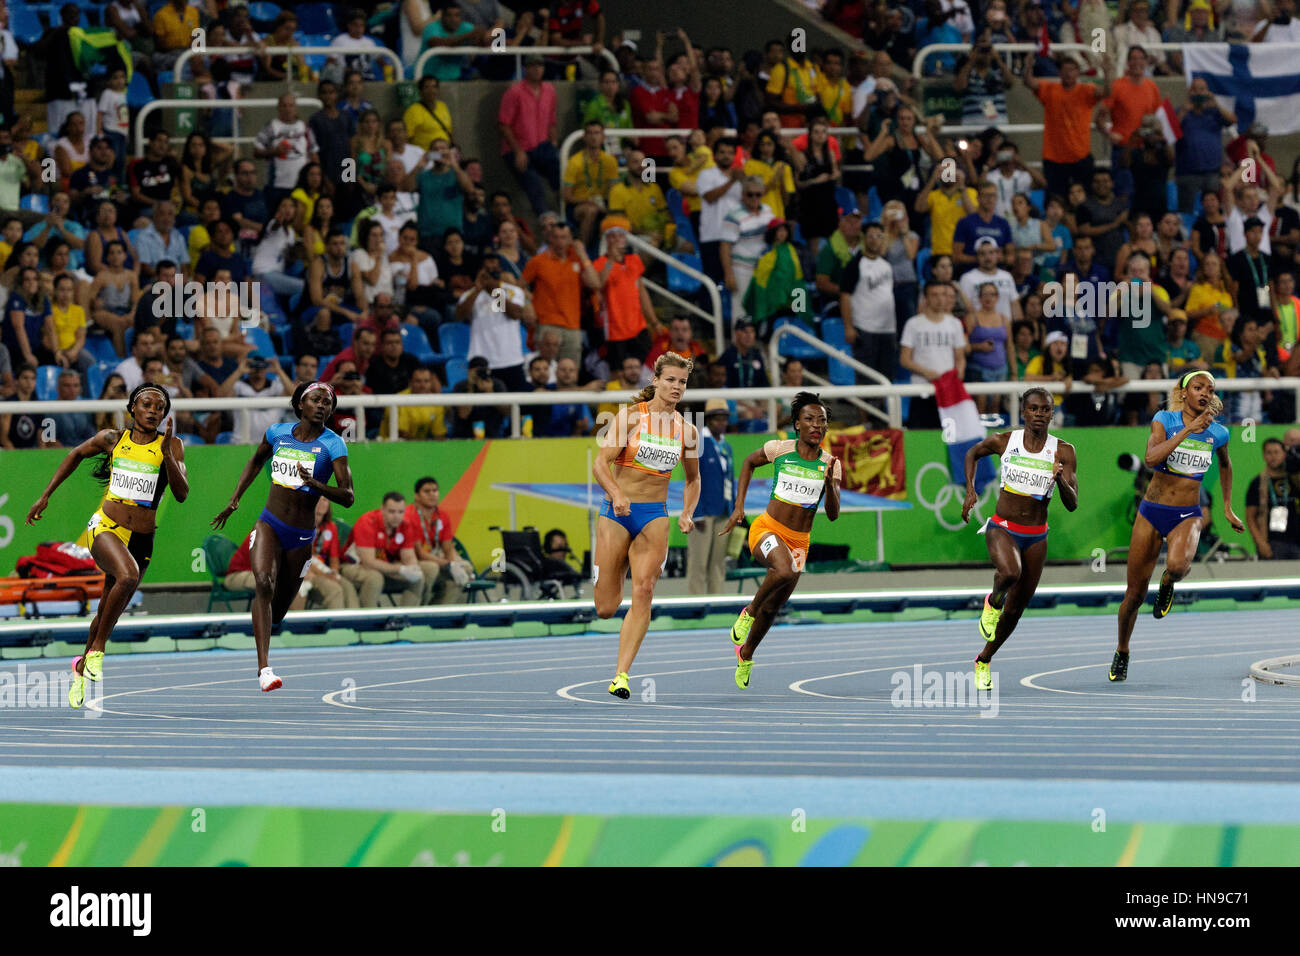 Rio de Janeiro, Brazil. 17 August 2016.  Athletics, Women's 200m finals at the 2016 Olympic Summer Games. ©Paul - Stock Image